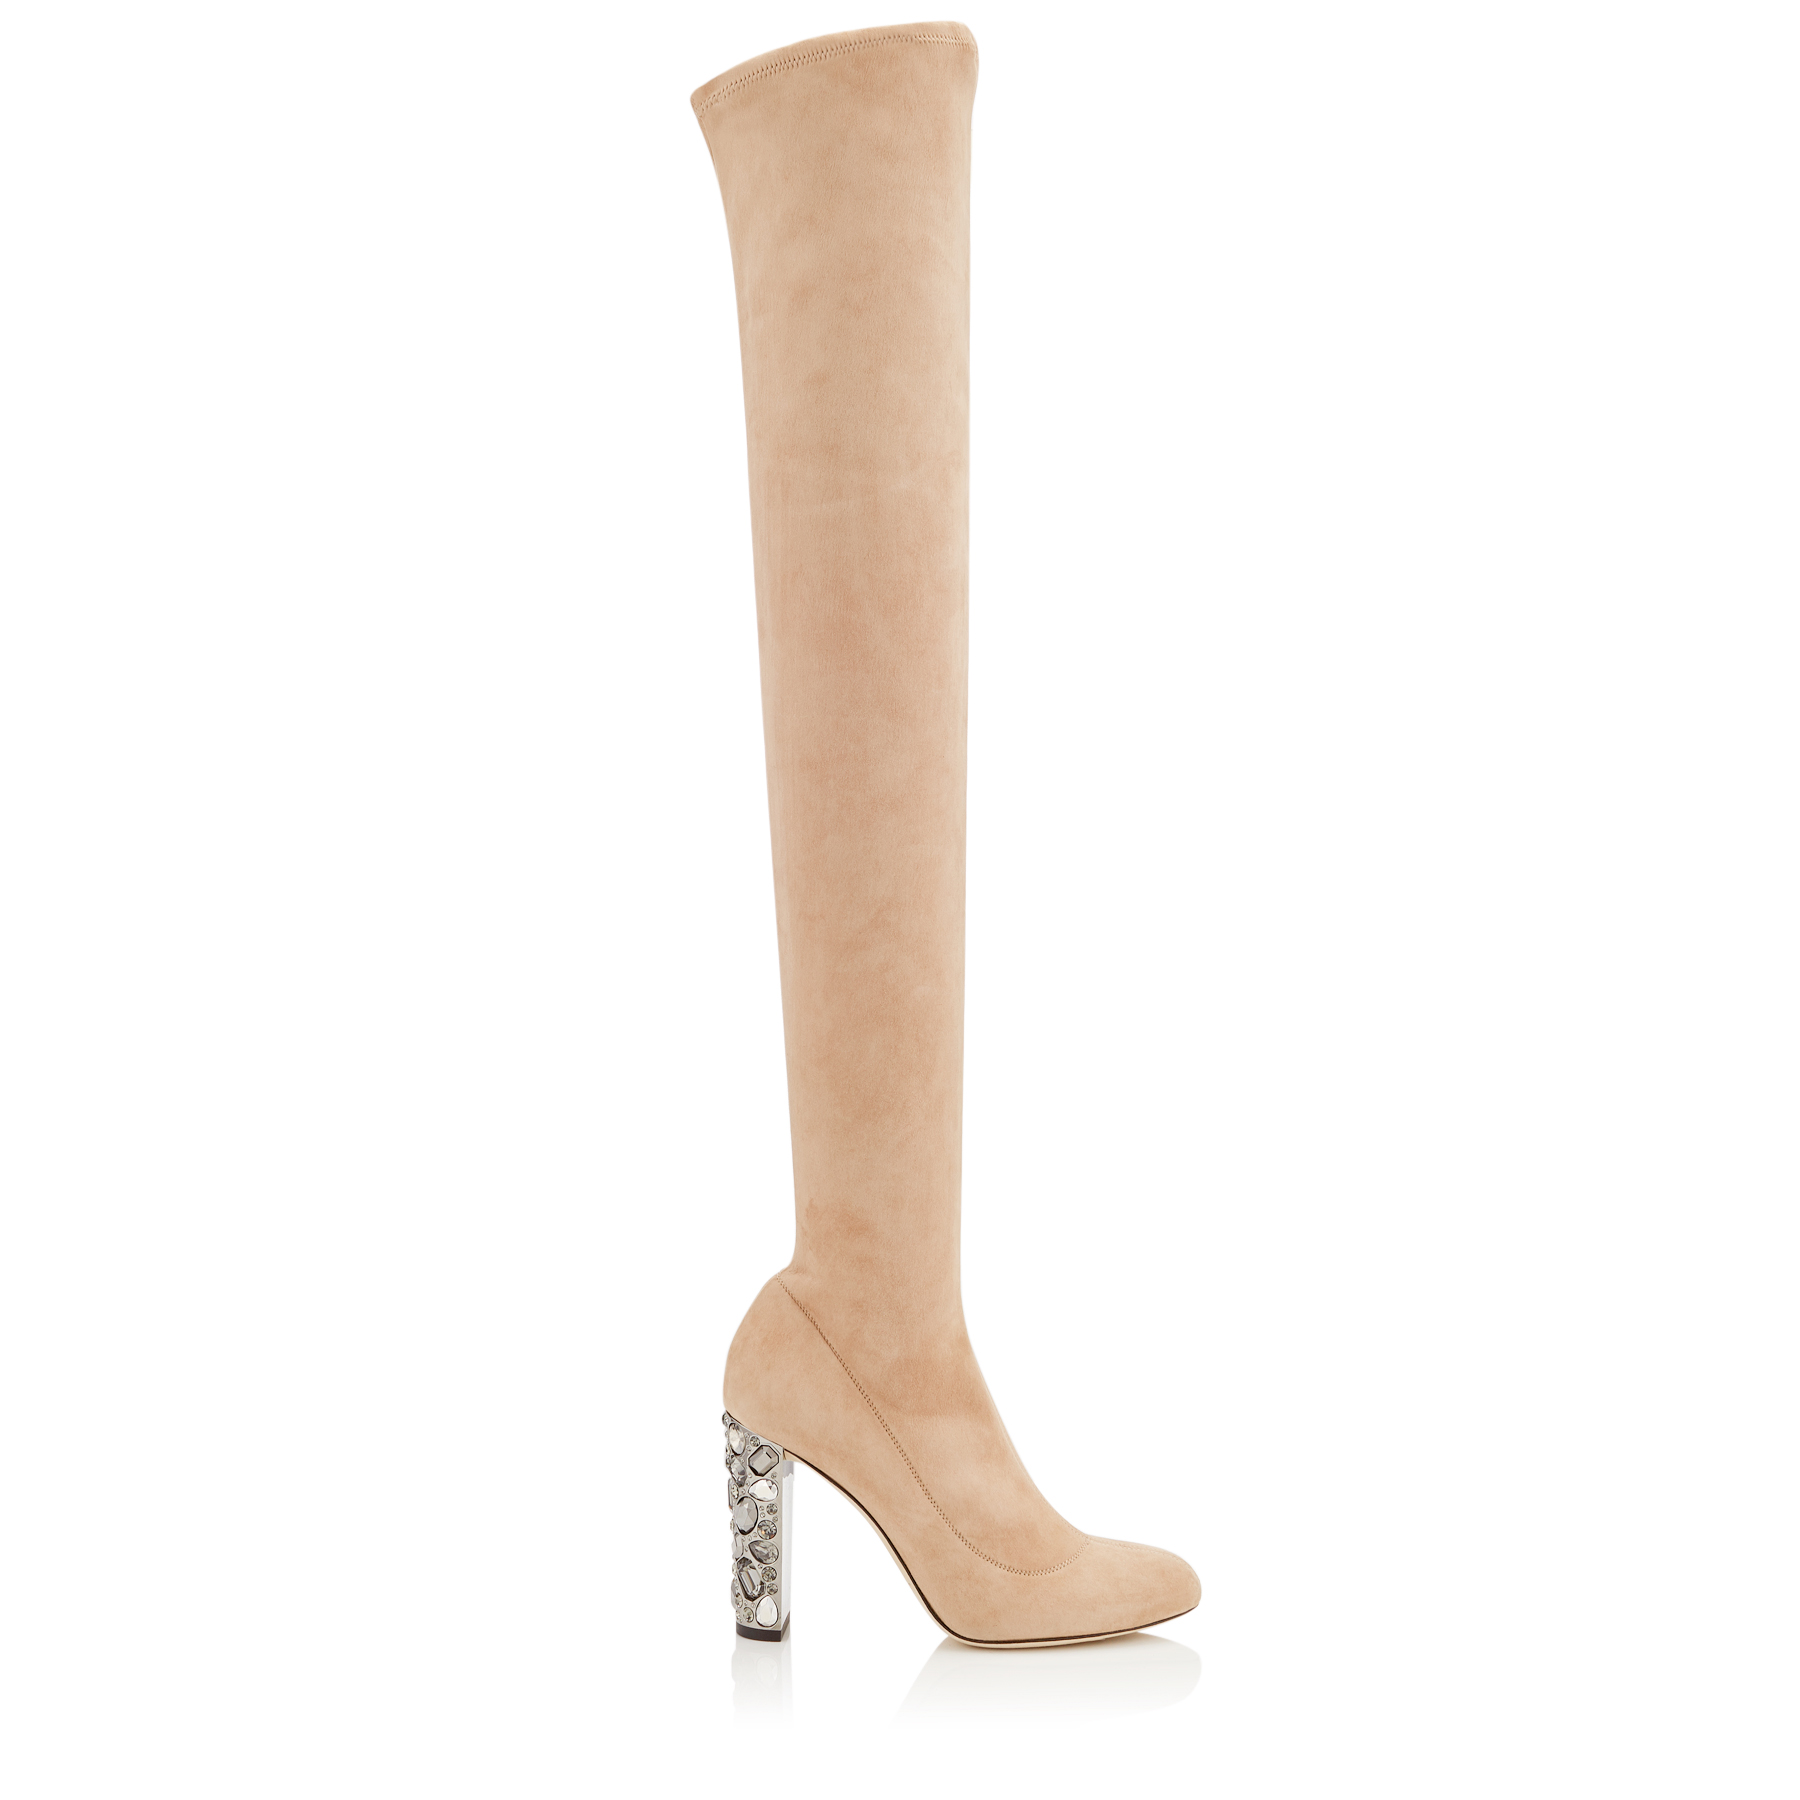 MYA 100 Ballet Pink Stretch Suede Over The Knee Boots with Metallic Embellished Heel by Jimmy Choo